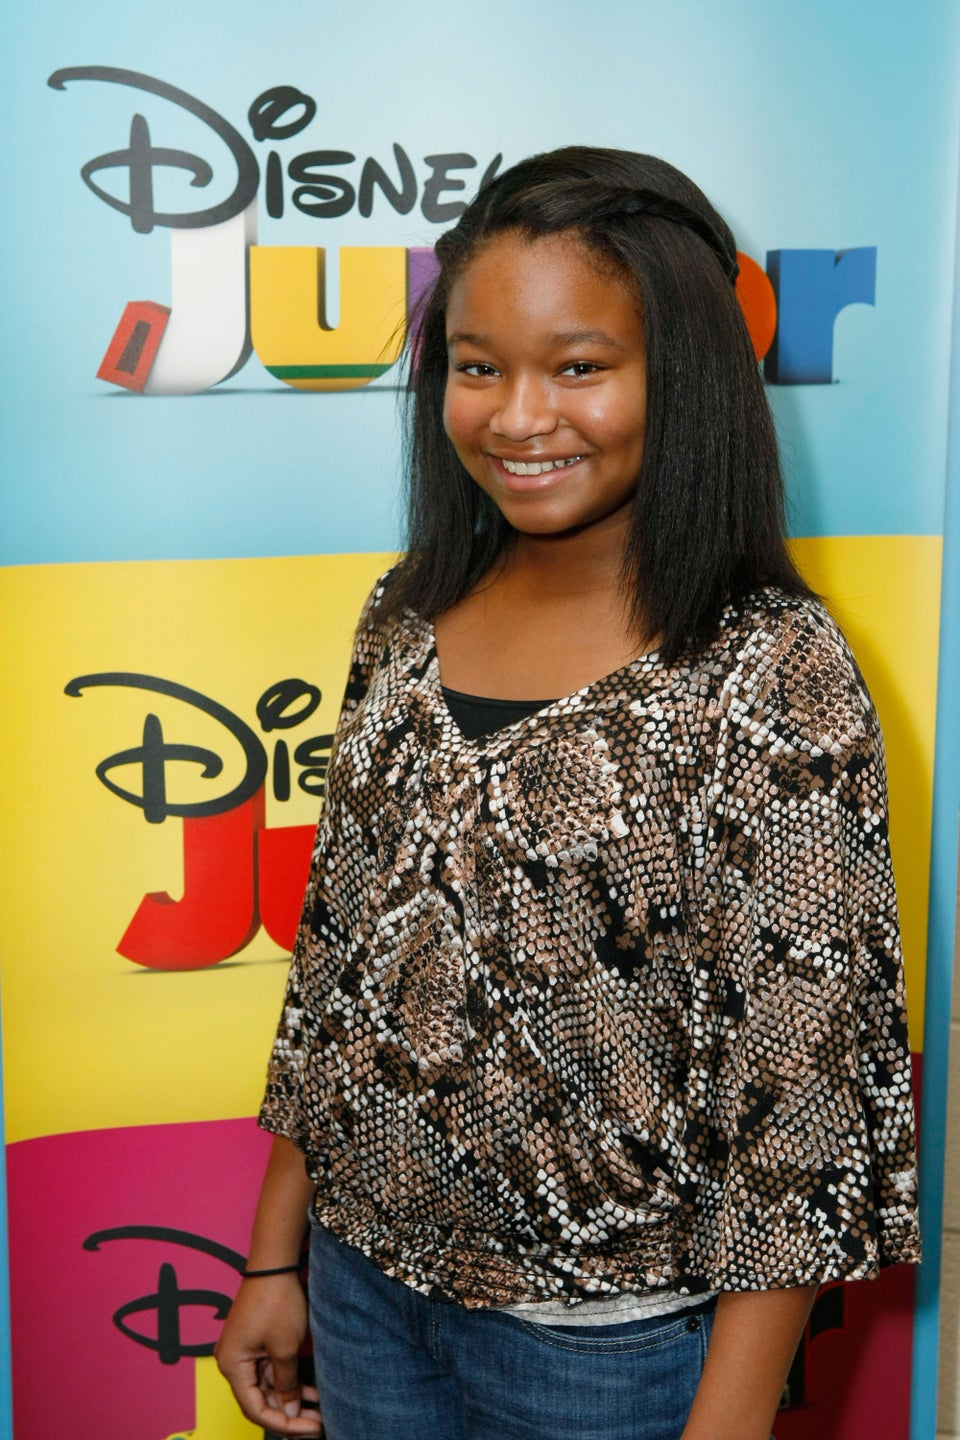 New and Next: Meet Kiara Muhammad, The Voice of Disney's Newest Animated Character, 'Doc McStuffins'